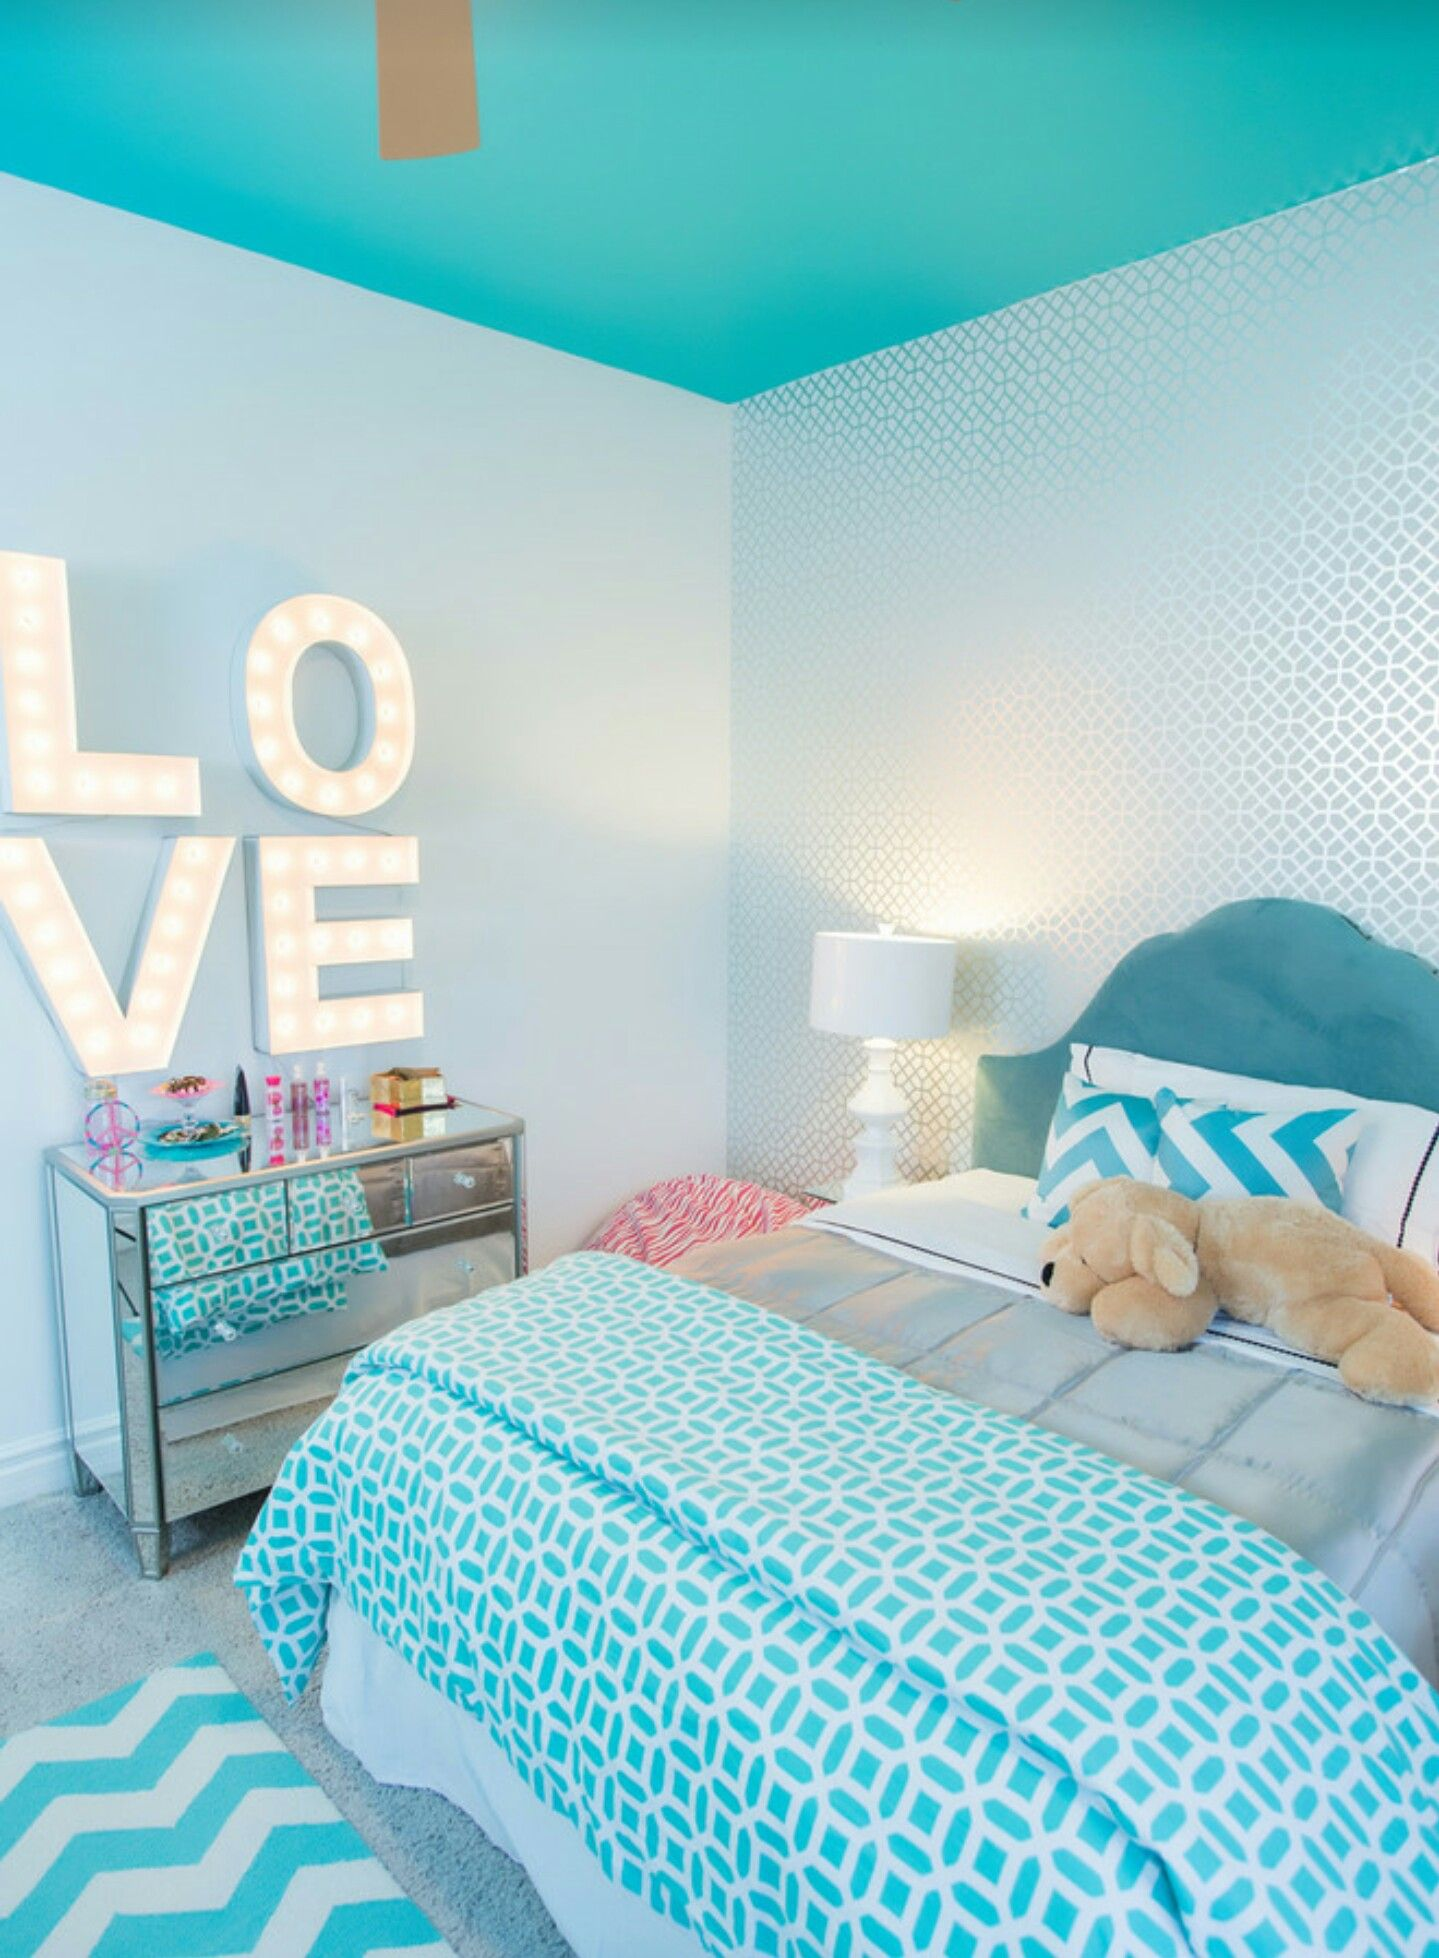 Love y la cajonera gala1 pinterest turquoise for Teen girl room decor